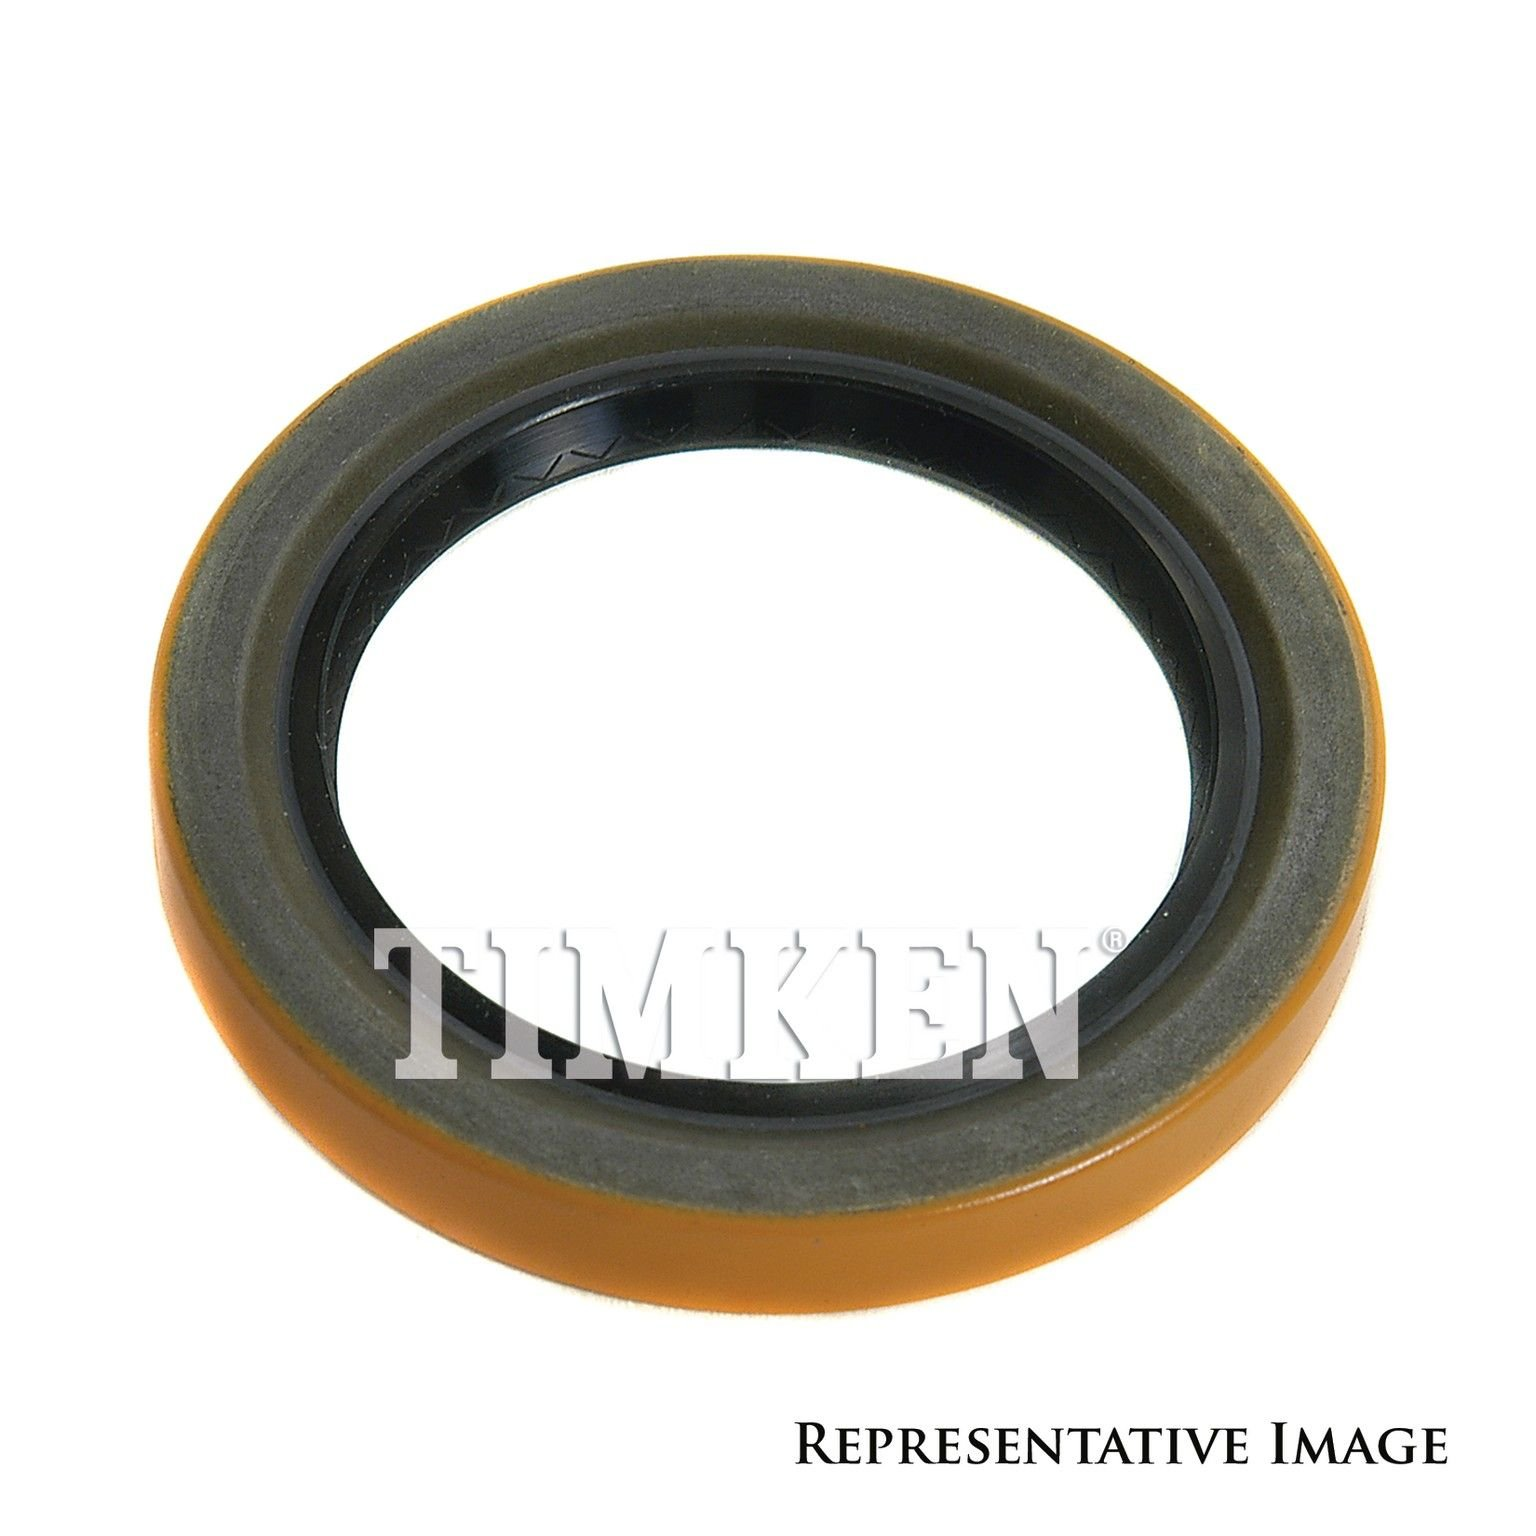 Isuzu Trooper Differential Pinion Seal Replacement (Corteco